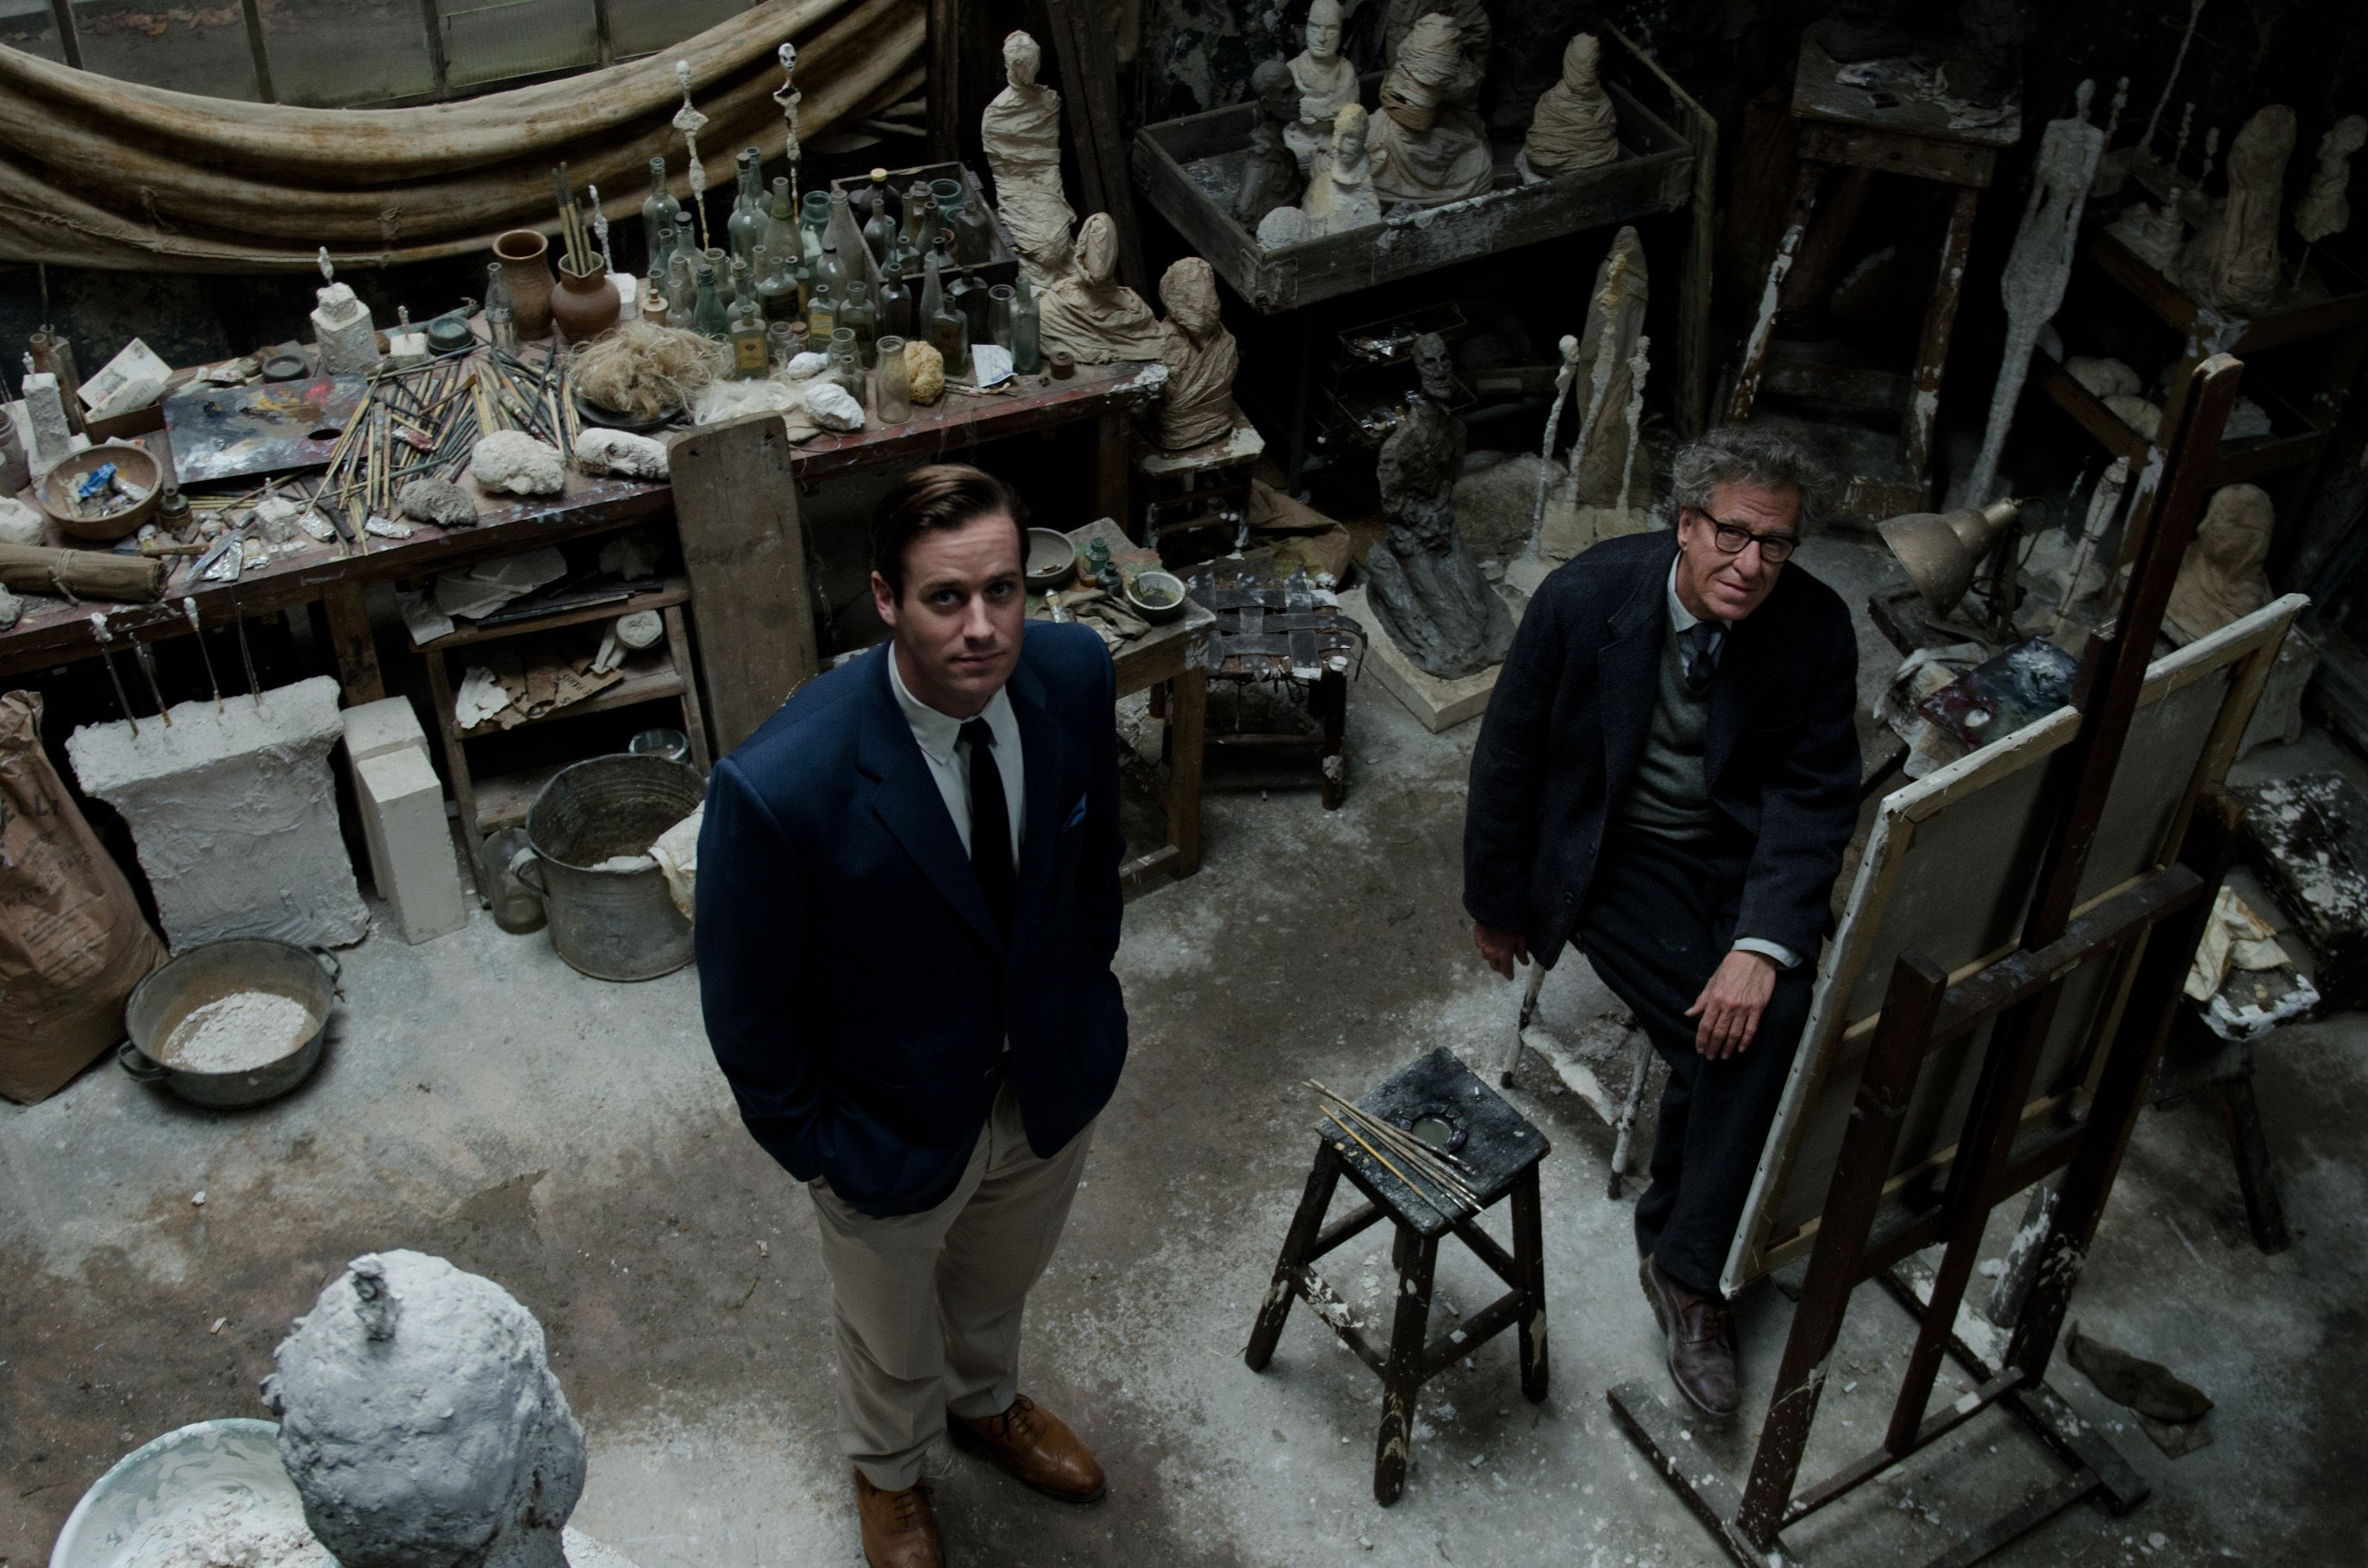 Final Portrait review: A witty, sympathetic portrayal of a great artist